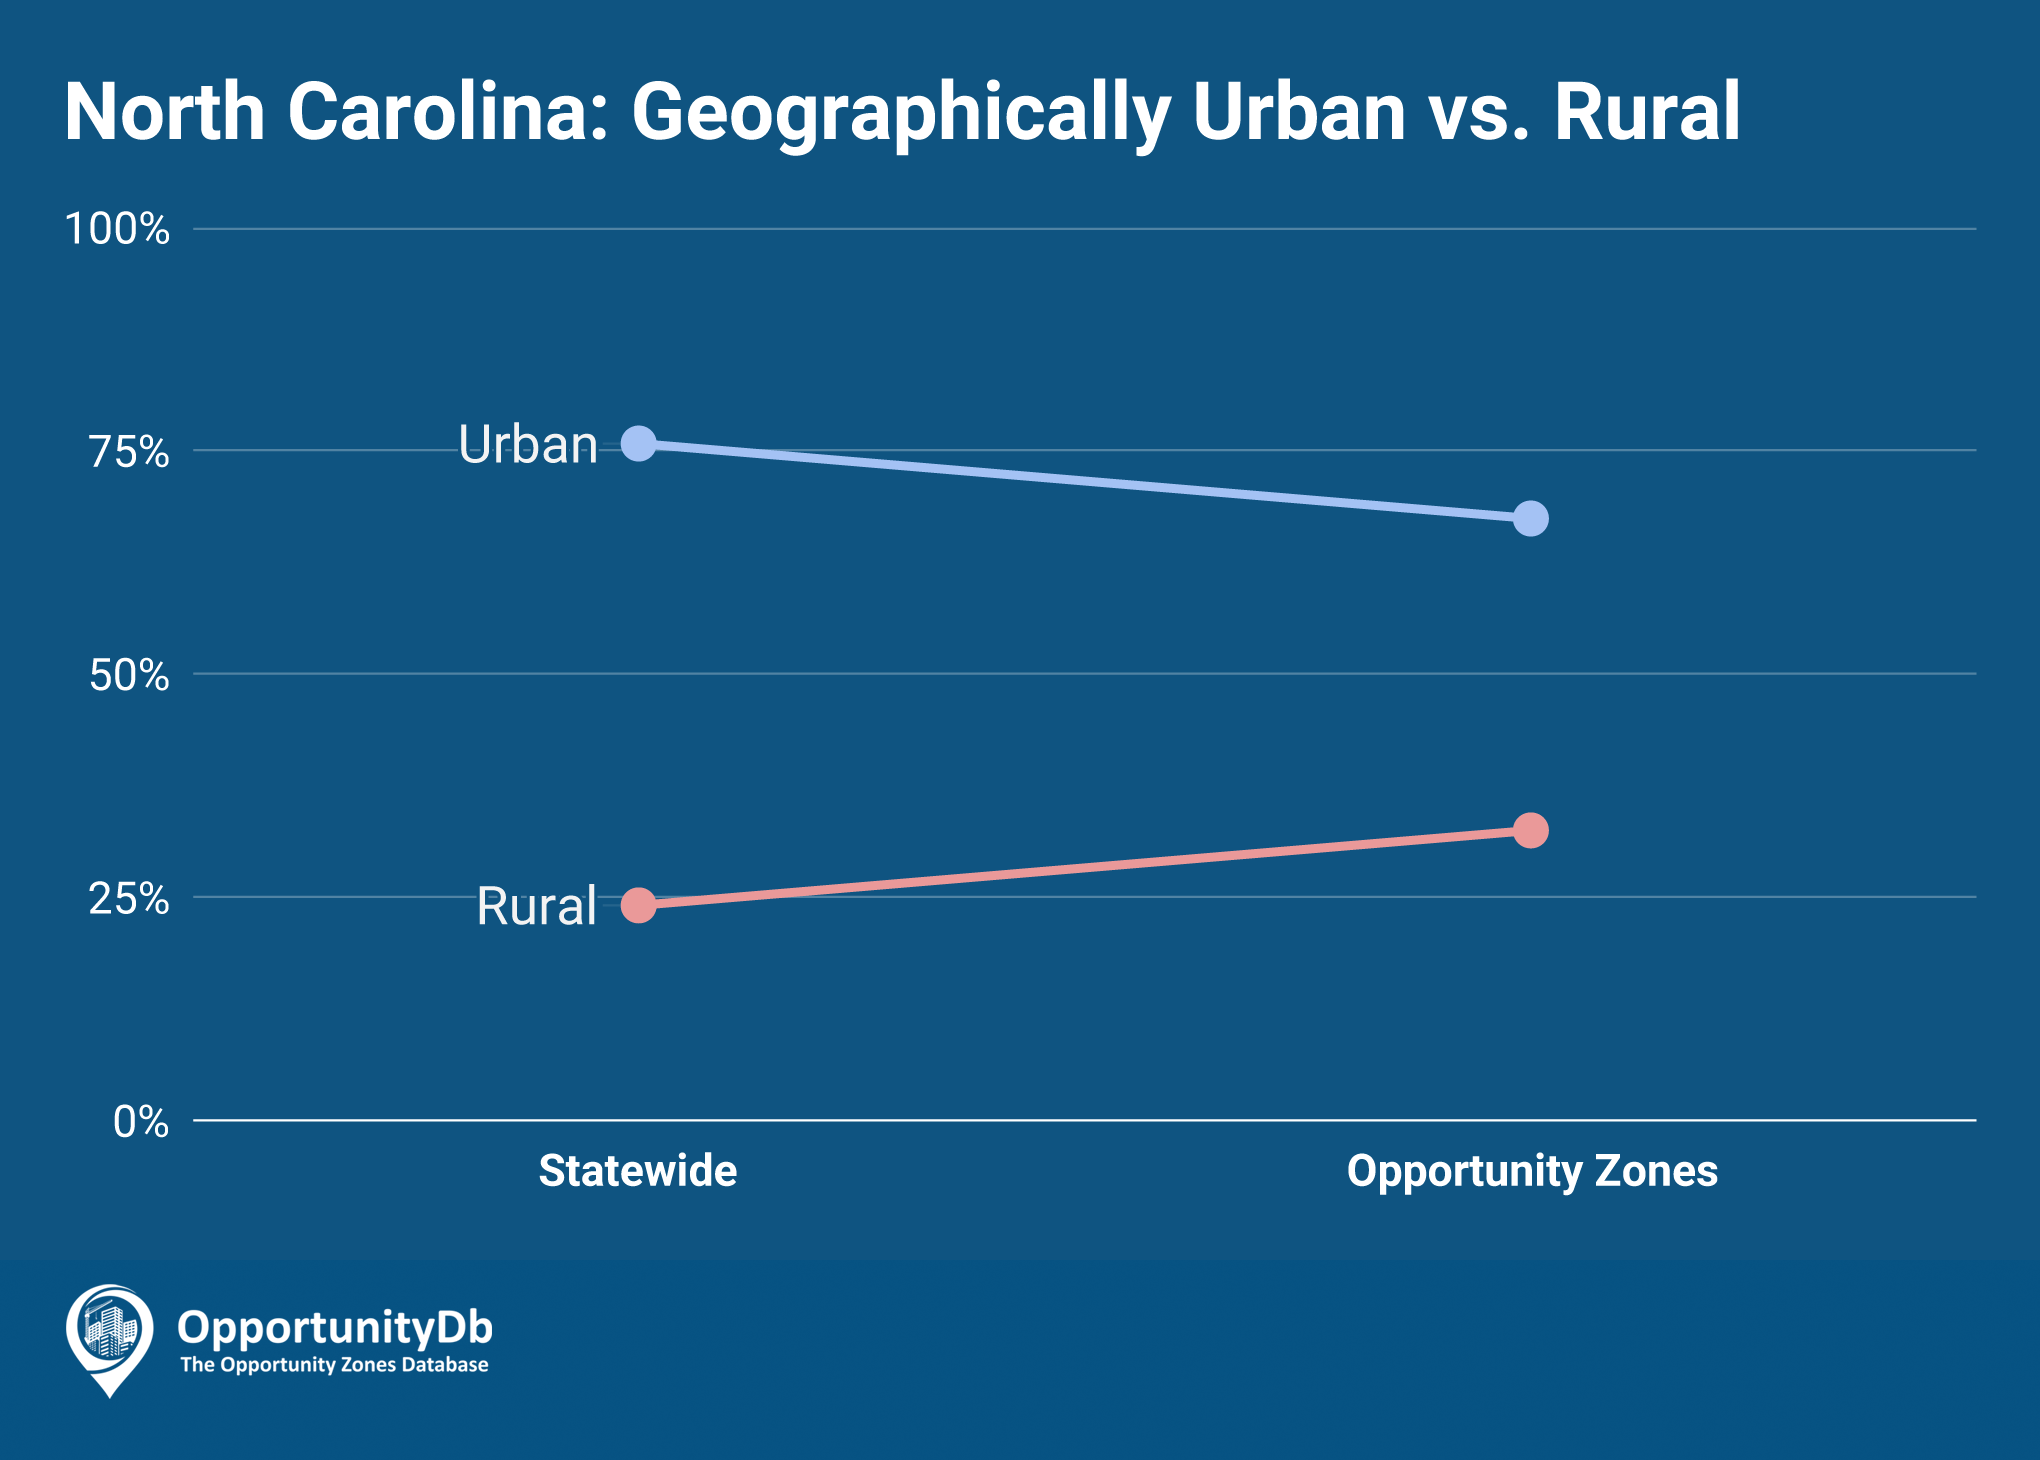 Urban vs. Rural in North Carolina Opportunity Zones